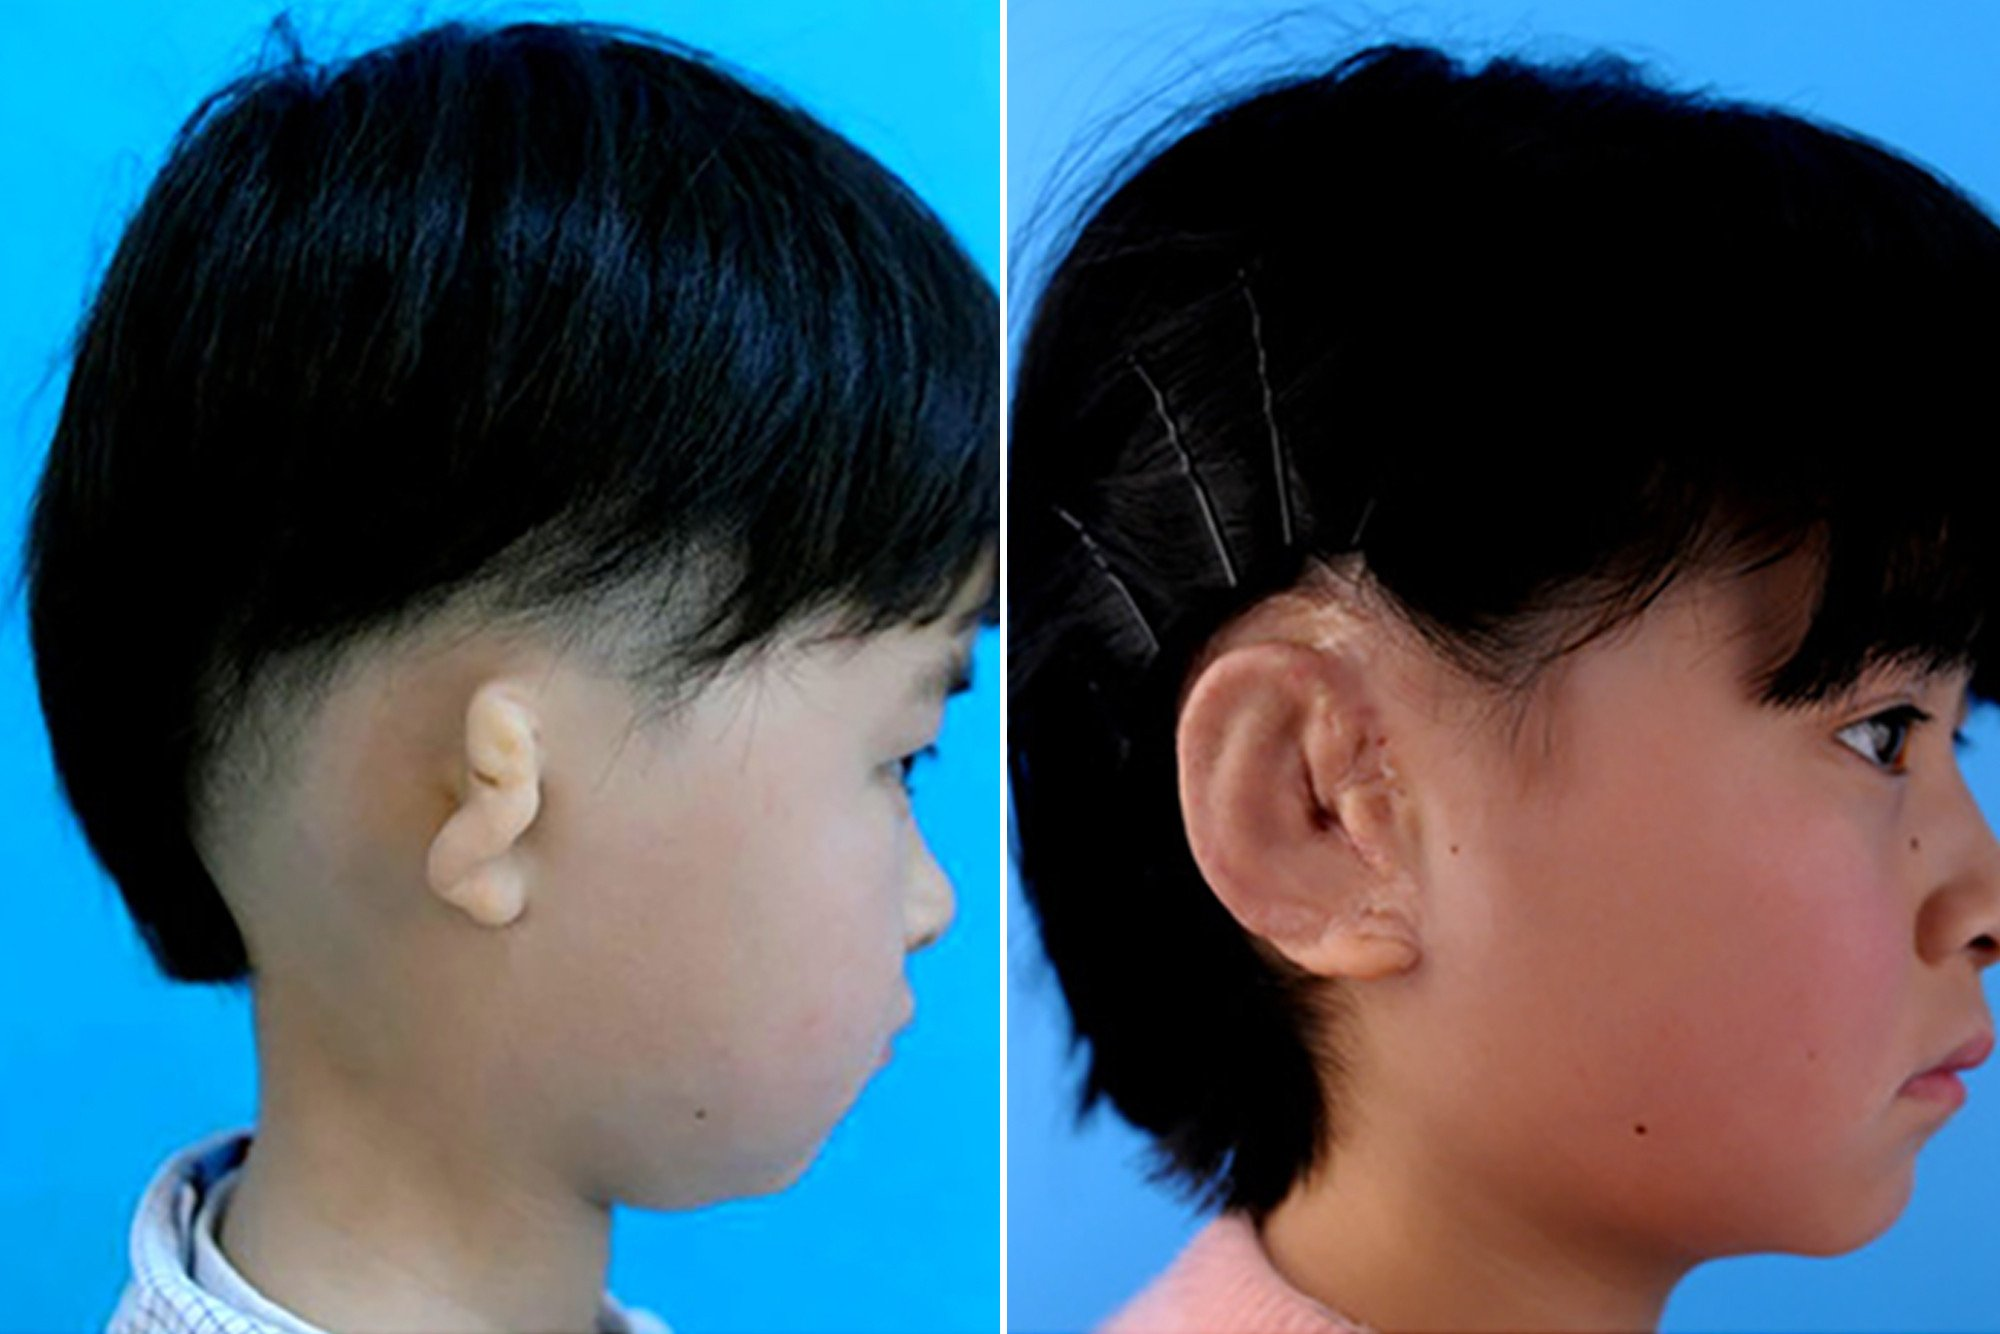 Kids receive new ears 3D-printed using their own cells